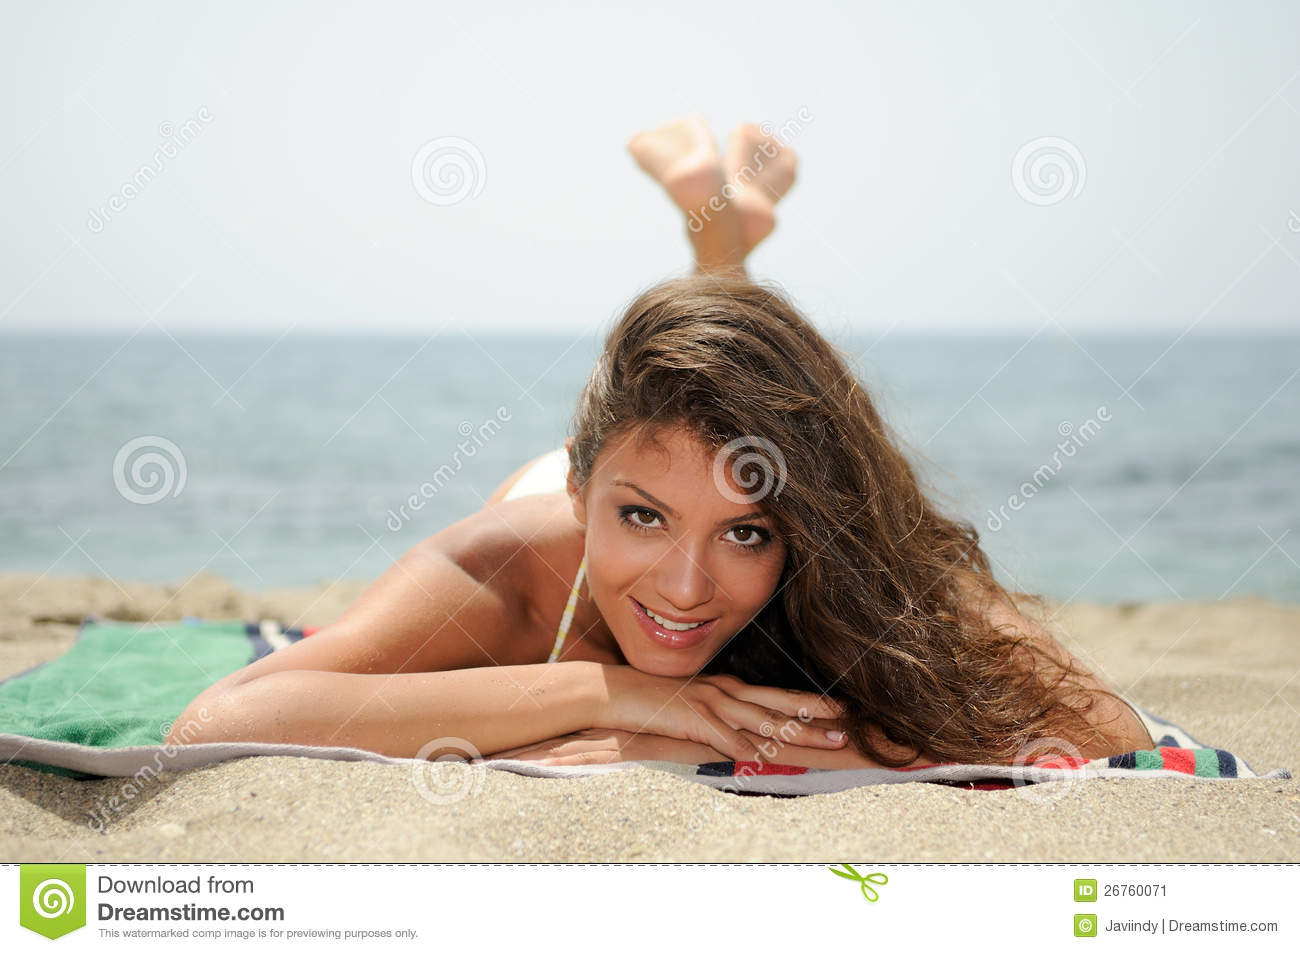 Woman With Beautiful Body On A Tropical Beach Stock Image - Image ...